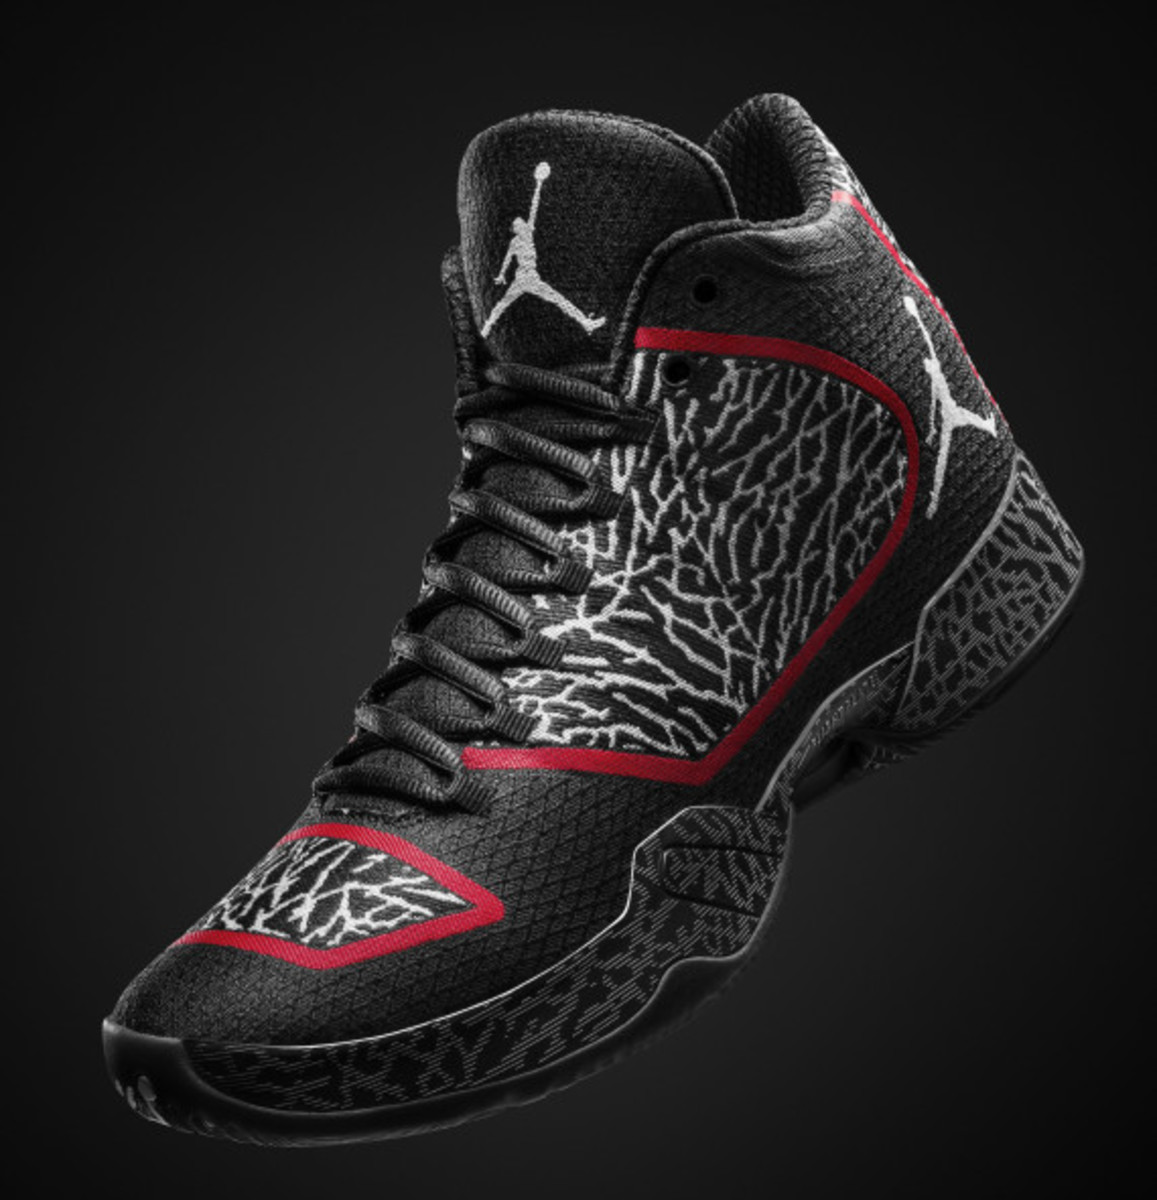 Air Jordan XX9 with First-Ever Performance Woven Upper | Officially Unveiled - 9